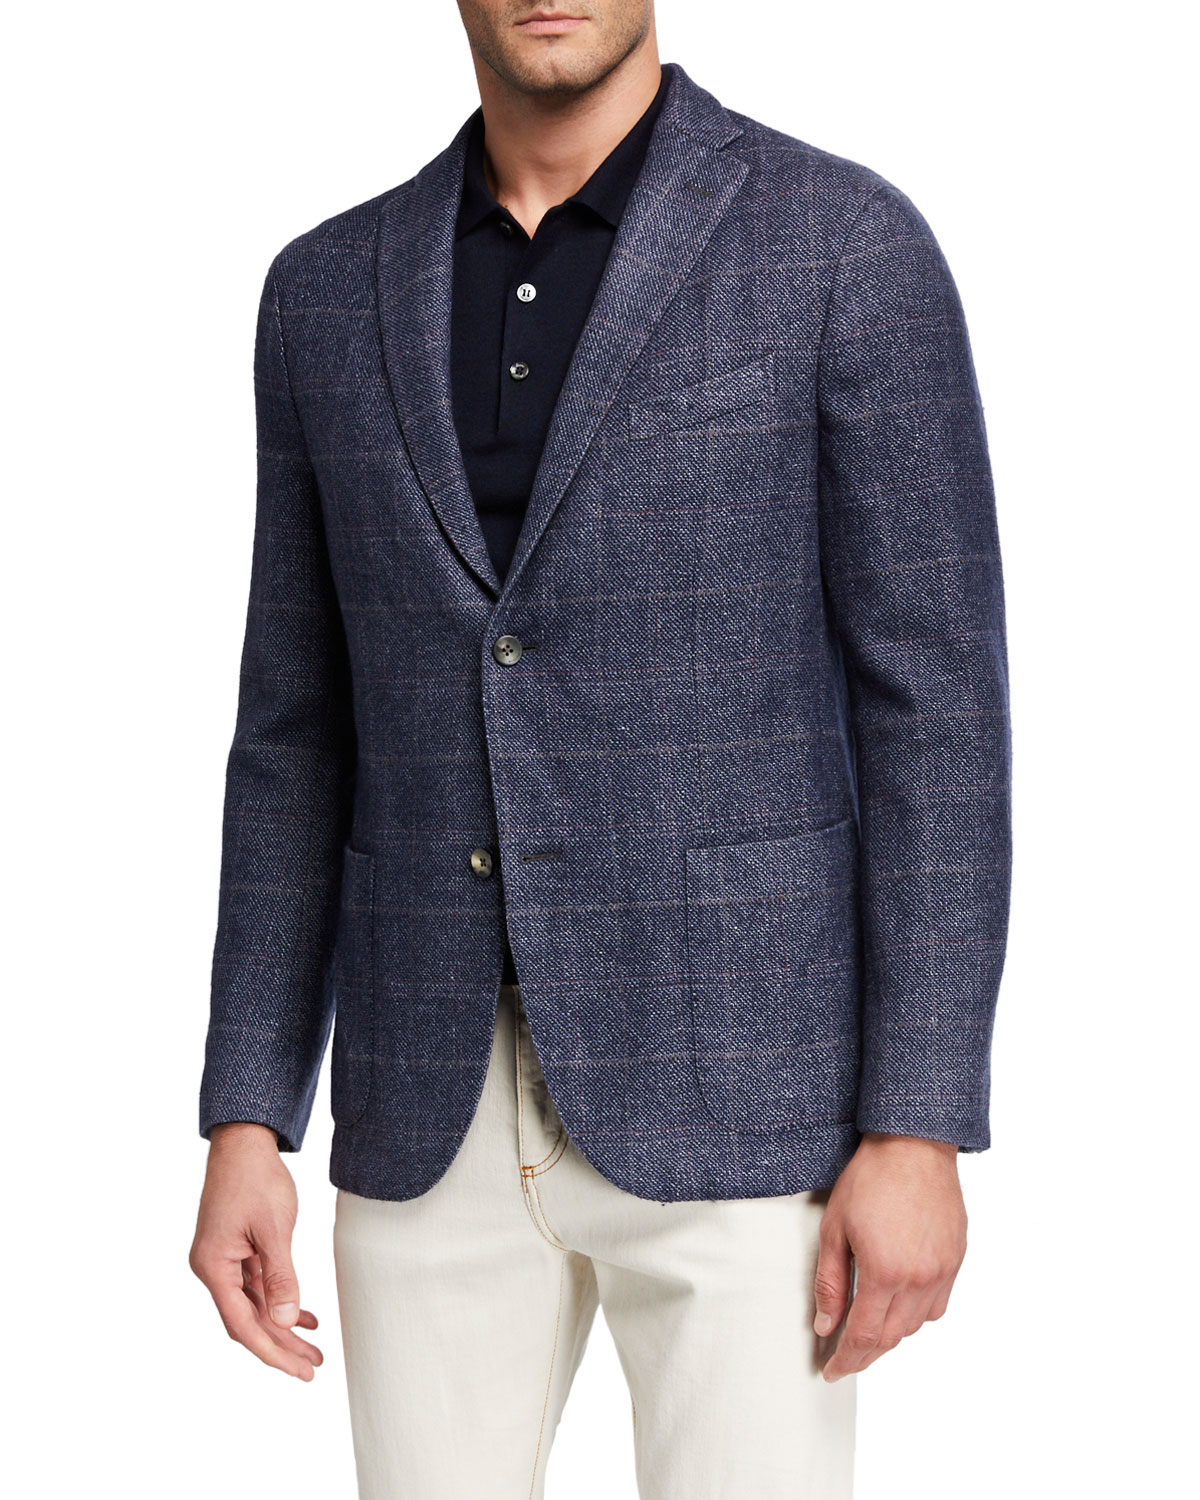 Boglioli Jackets MEN'S WASHED WOOL PLAID TWO-BUTTON JACKET